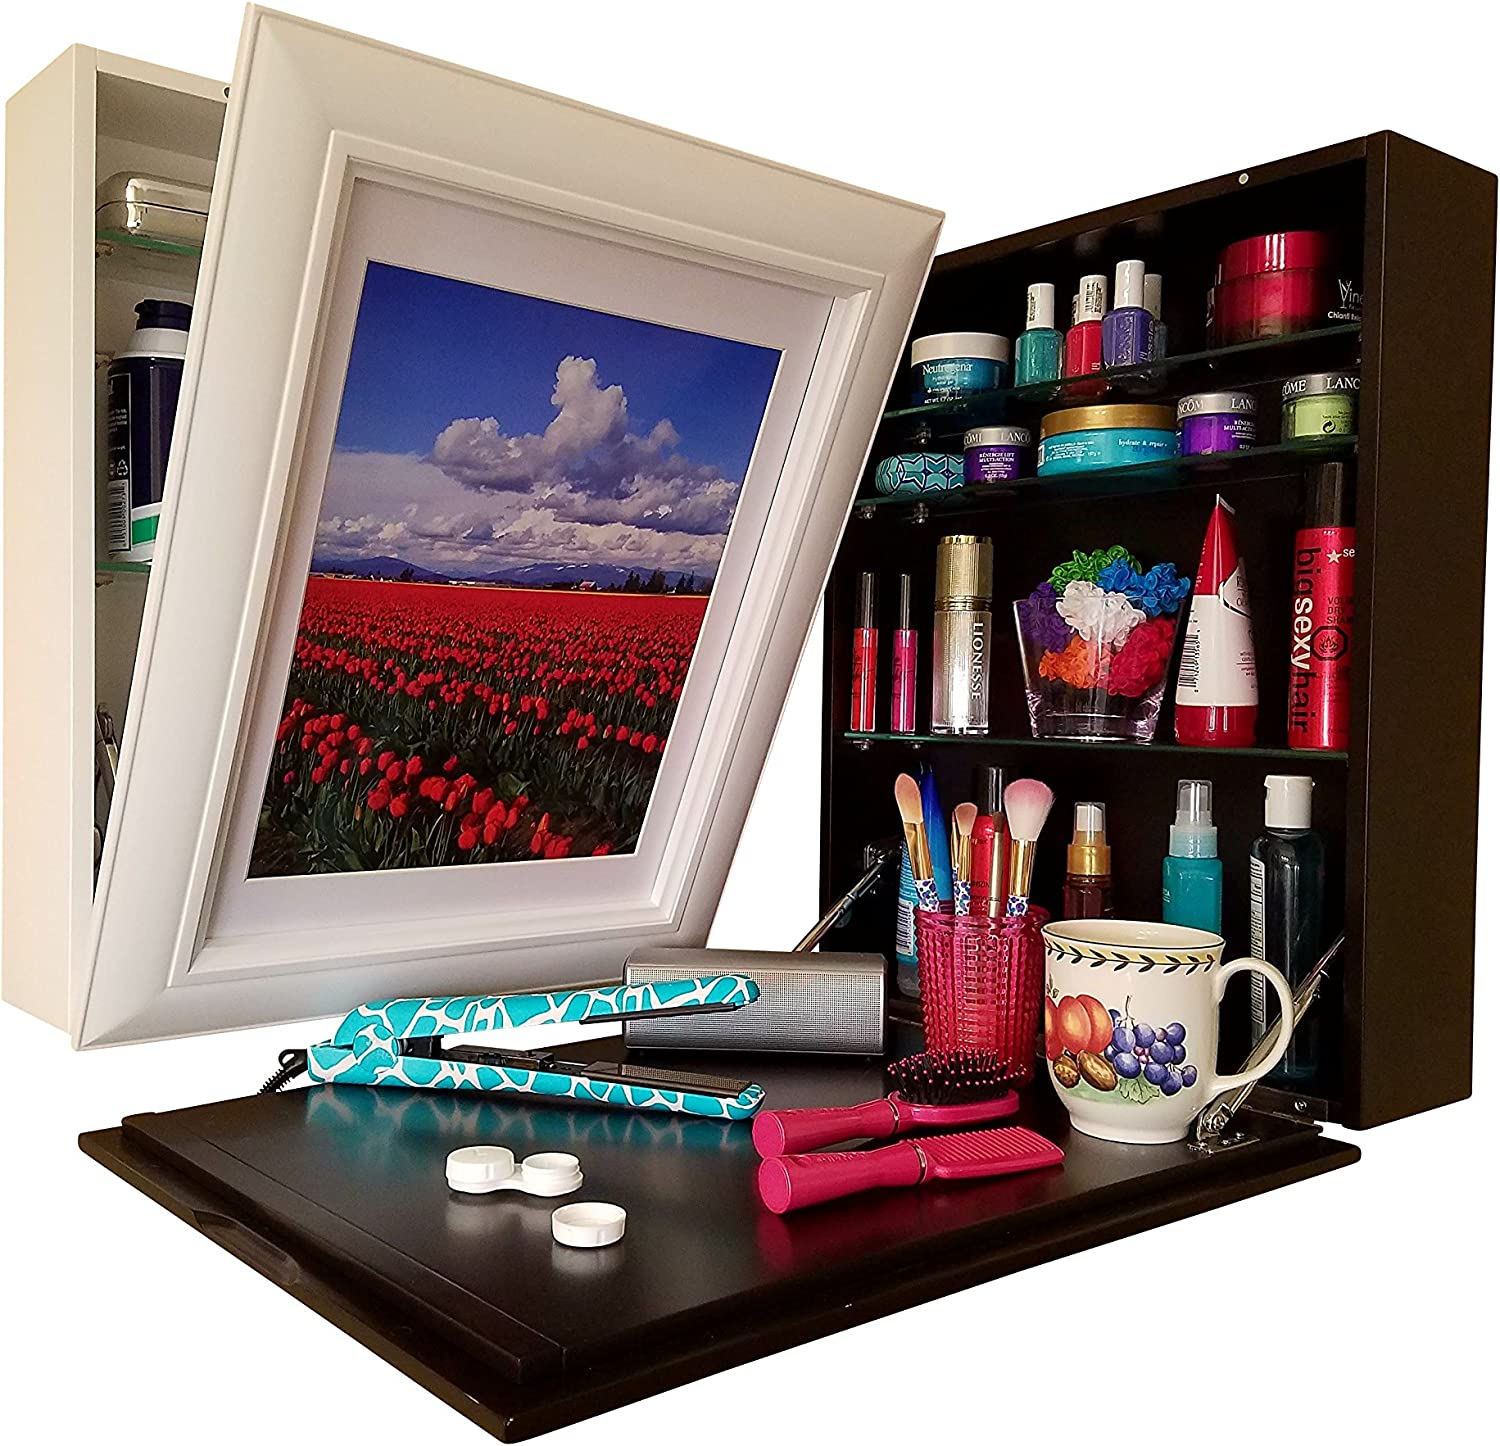 Flip Frame Art to Counter (1) Instant Counter-Top (2) Hidden Storage (3) Easy to Change Art. USES: Cosmetics, Medicine Cabinet, Spices, Office Supplies. Clear Clutter - Space Saver. White